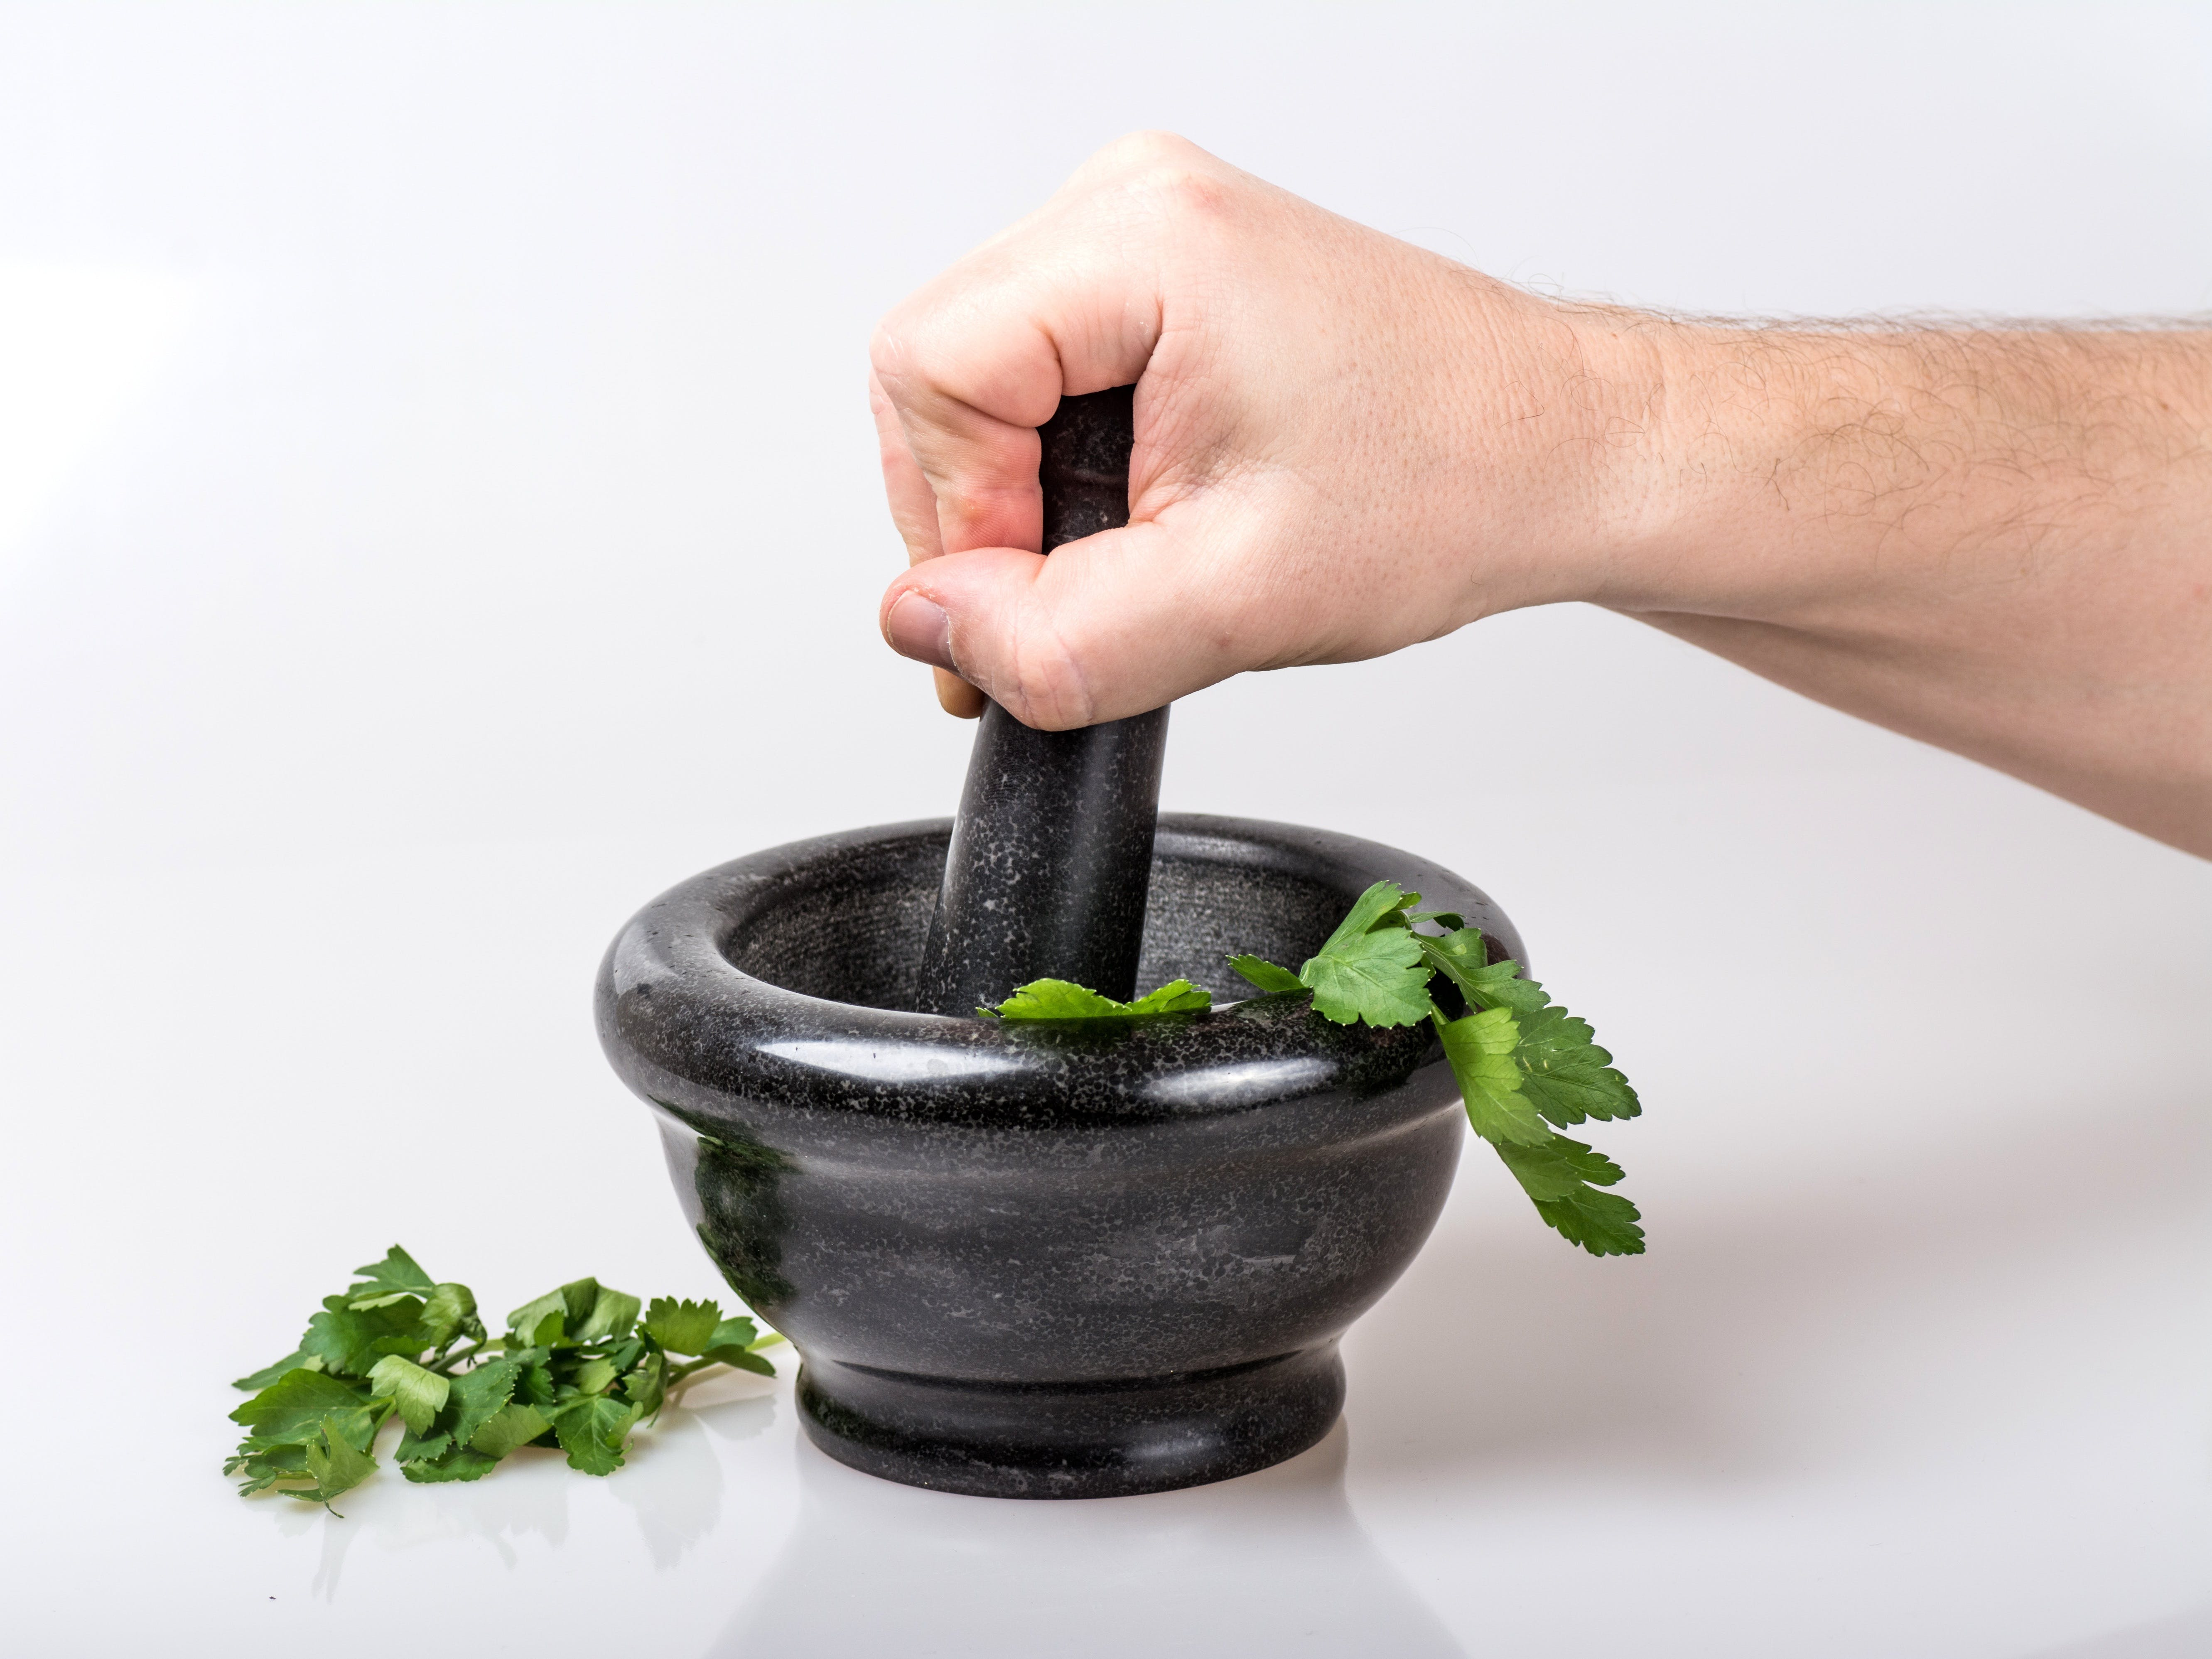 Human Holding Black Ceramic Pestle